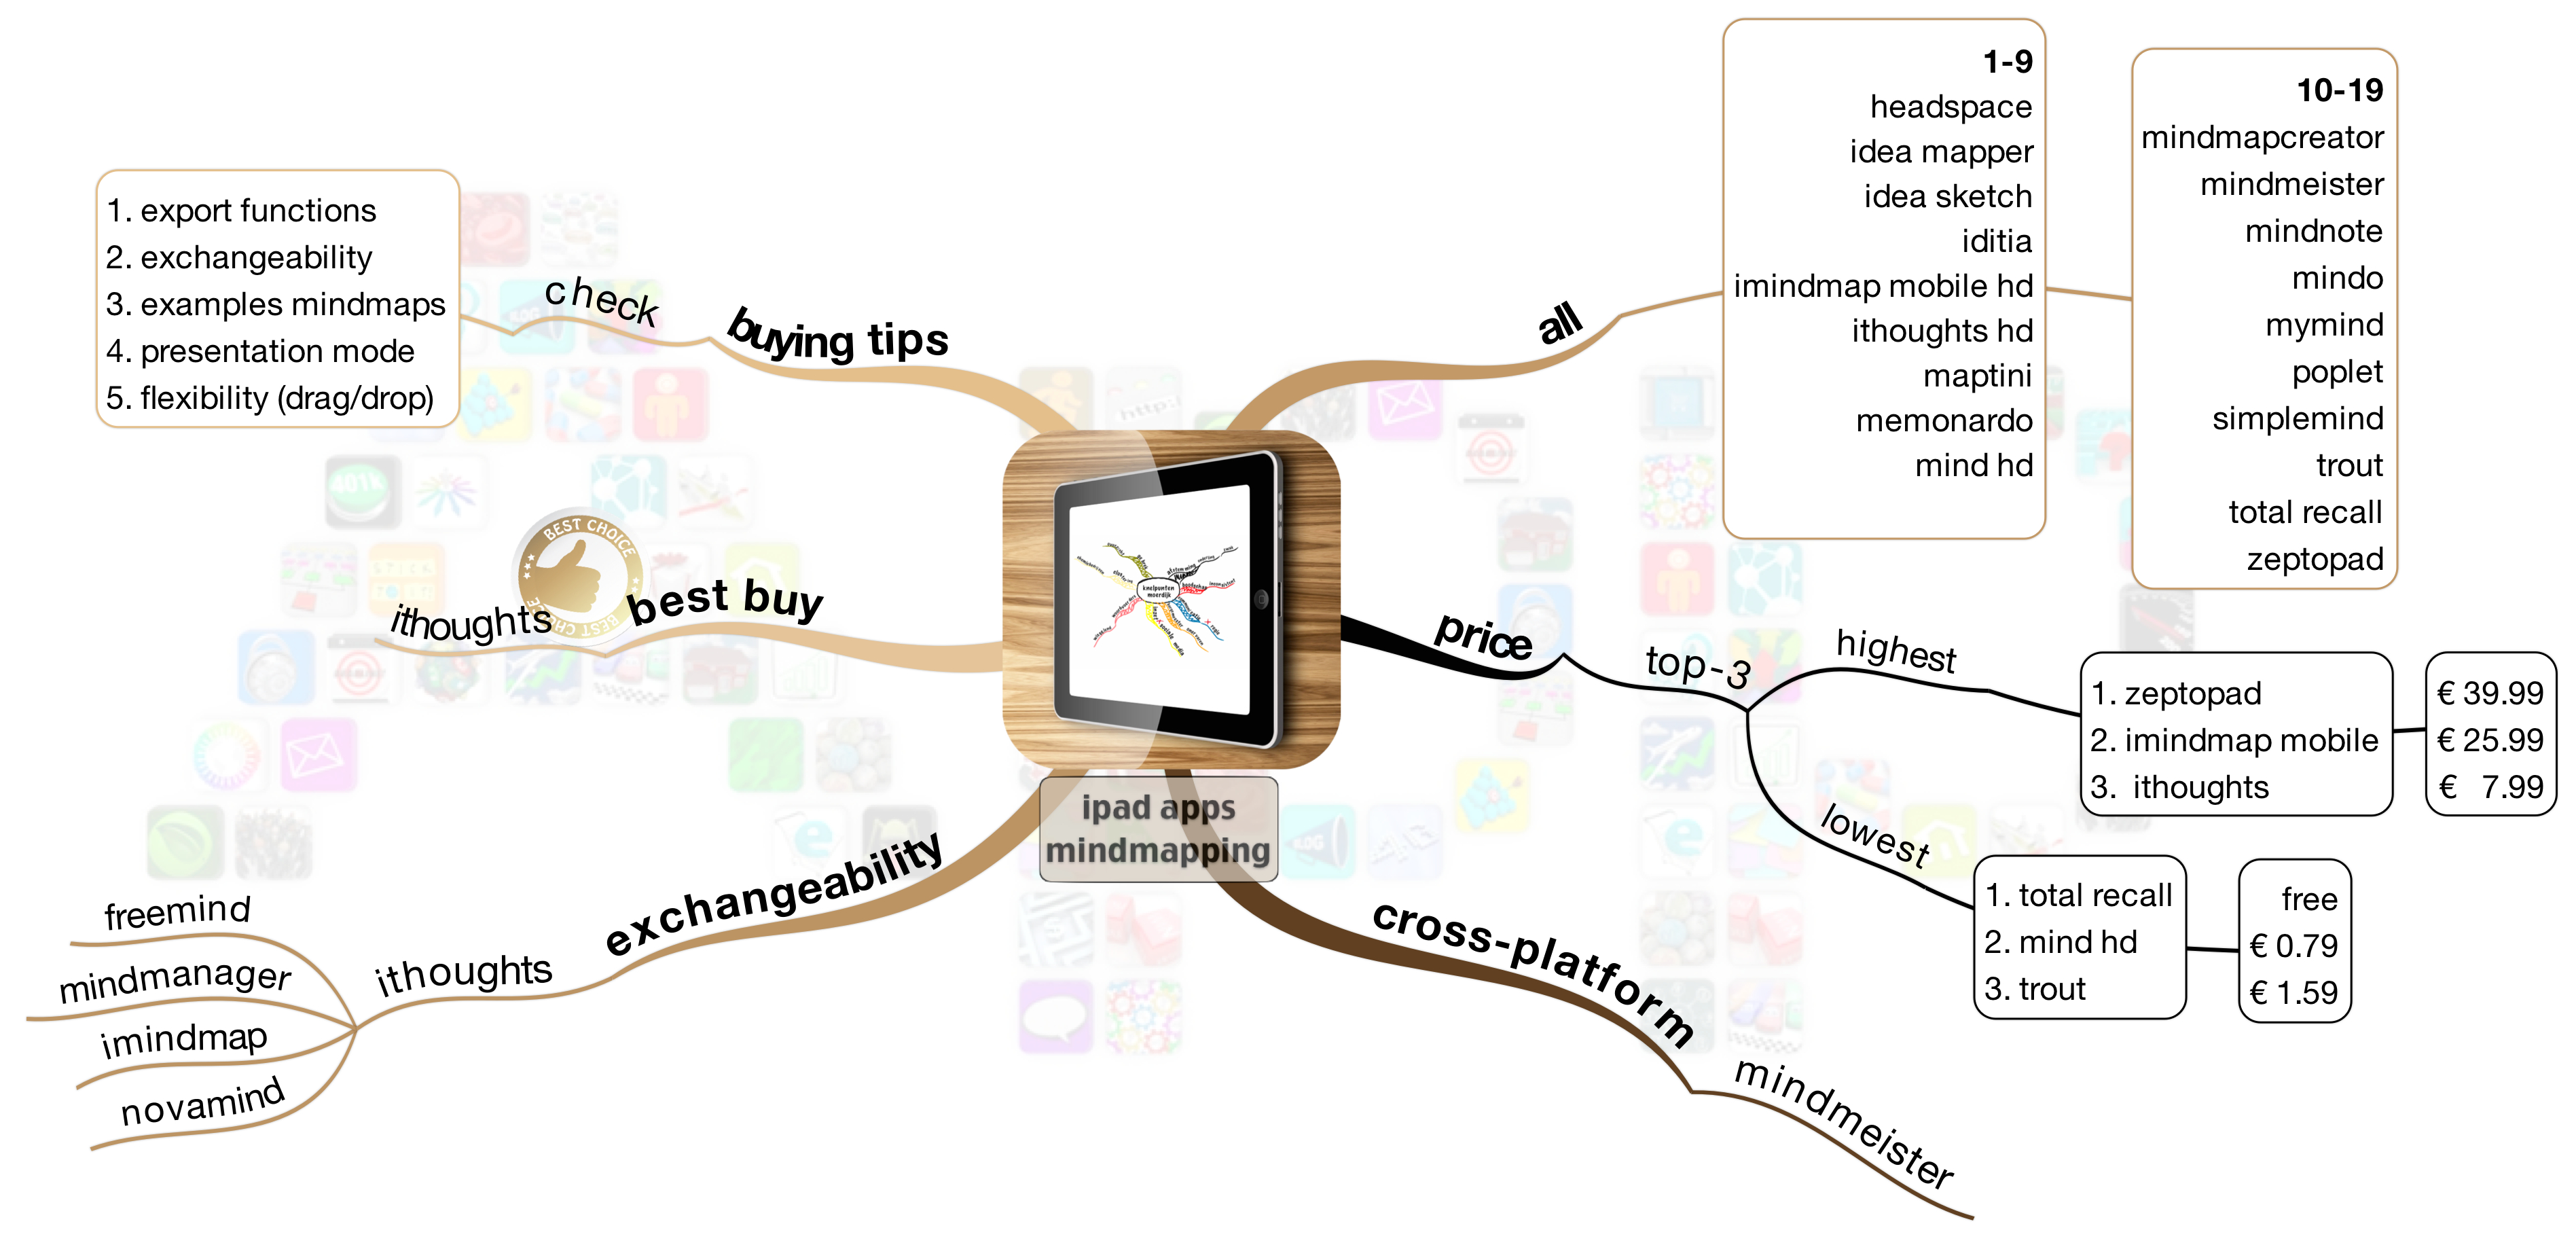 Think twice before you buy a mind map app | mastermindmaps on navigation apps, media apps, tracking apps, photography apps, search apps, happy thanksgiving apps, cooking apps, recording apps, bloom's taxonomy apps, accounting apps, education apps, finance apps, simulation apps,